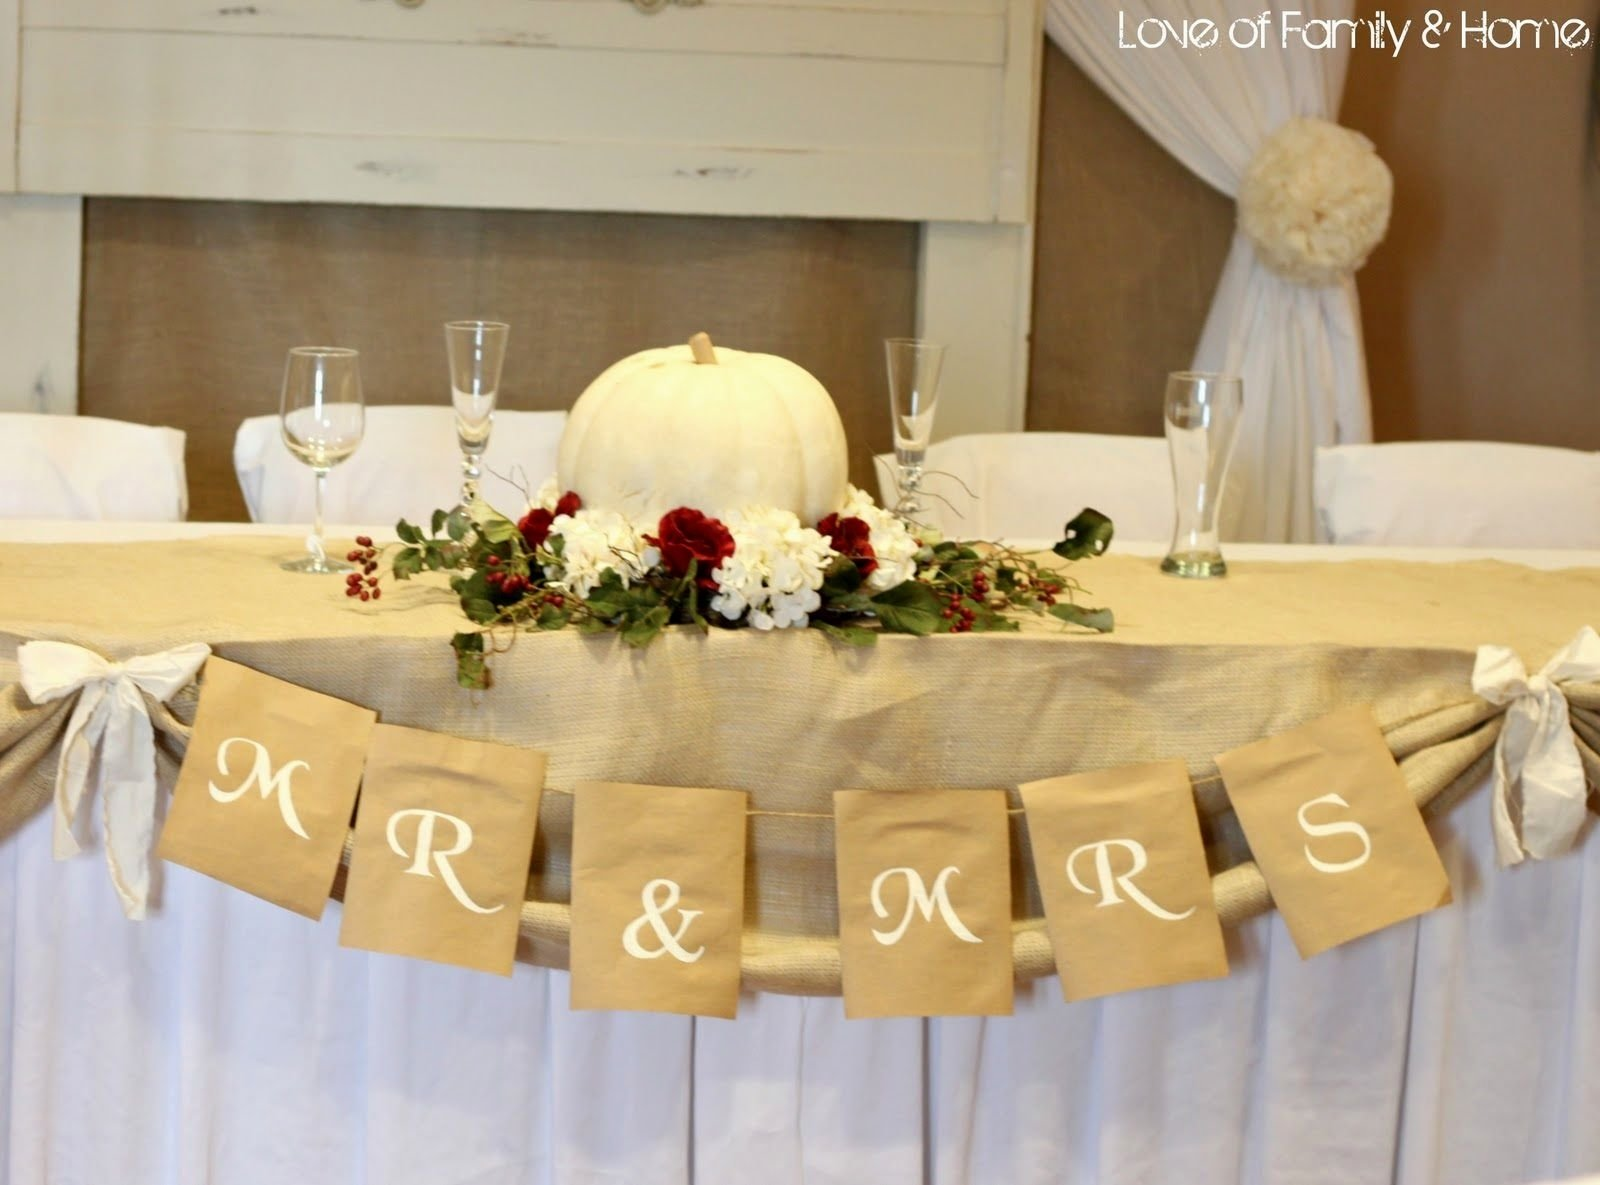 10 Most Recommended Diy Wedding Ideas On A Budget ideas on a budget fall wedding decorations diy decoration cheap 2 2020